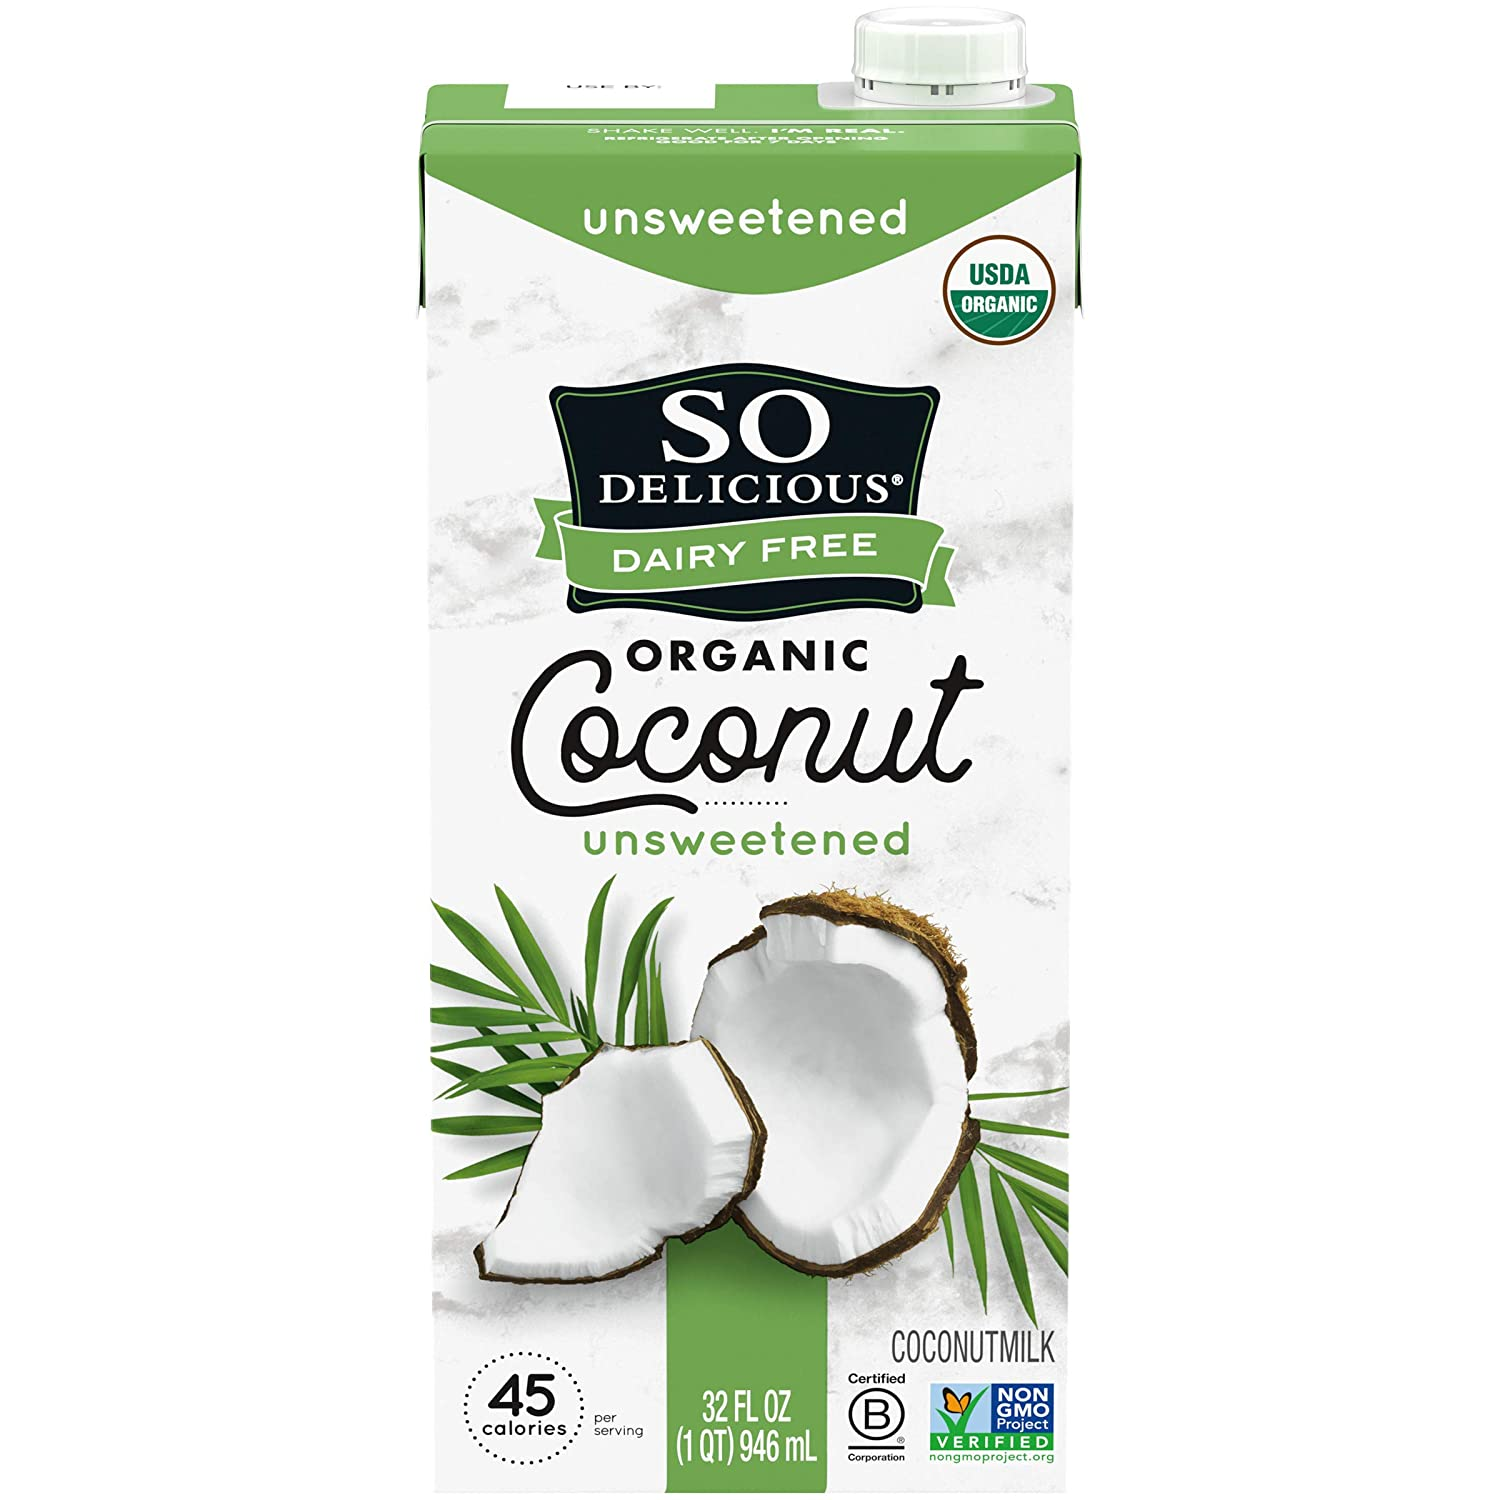 So Delicious Dairy Free Shelf-Stable Coconutmilk, Unsweetened, Vegan, Non-GMO Project Verified, 32 Ounce